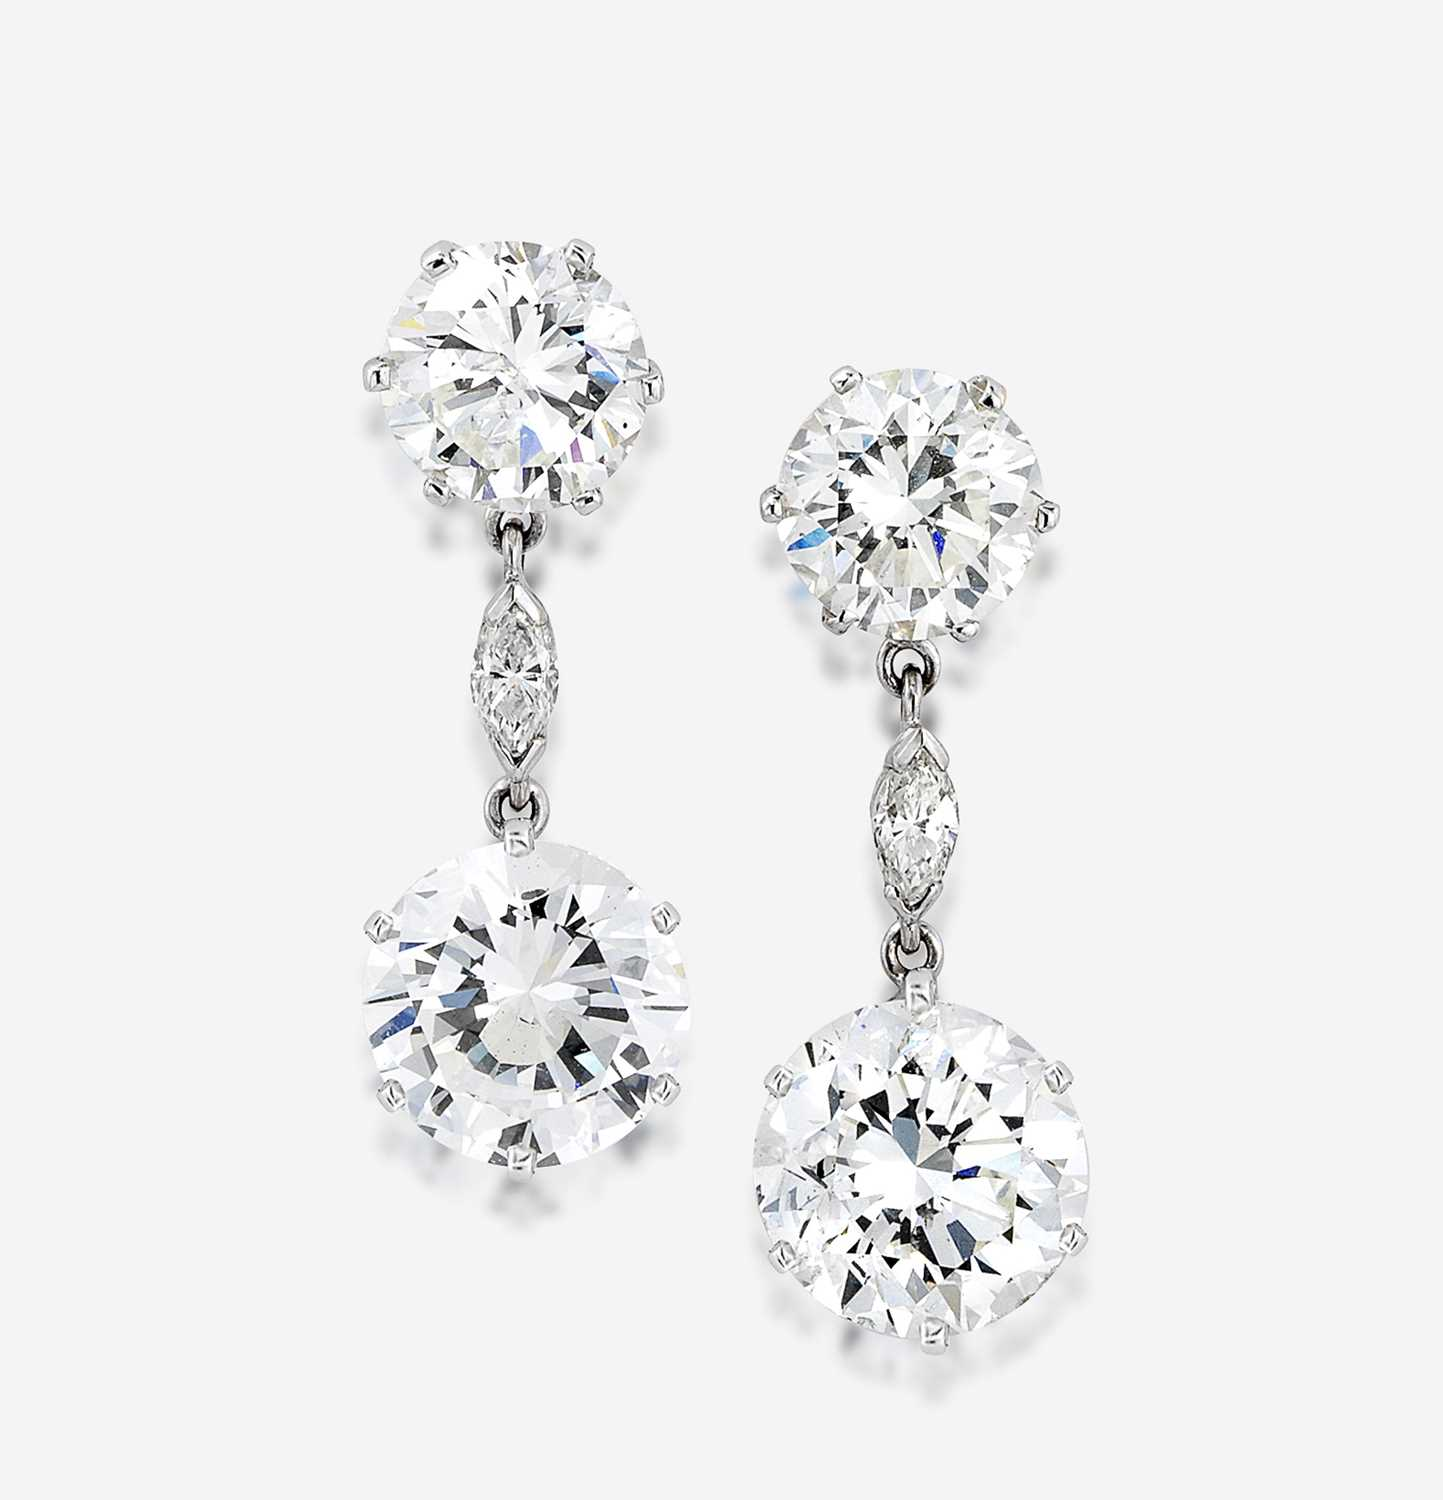 Lot 92 - A pair of diamond and eighteen karat white gold earrings